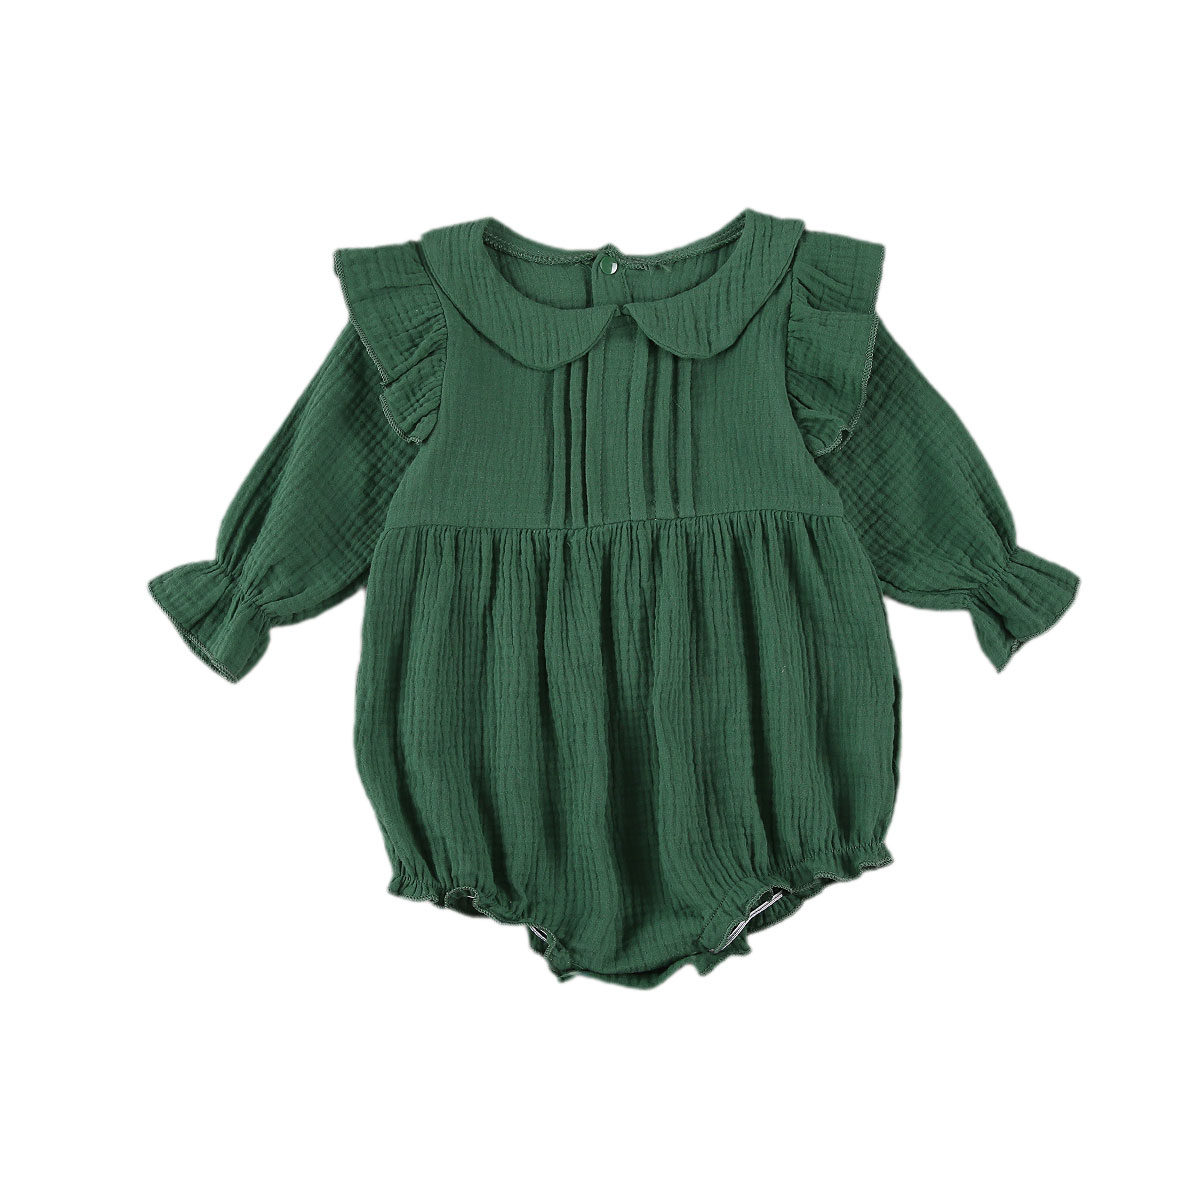 Newborn Baby Girls Romper Long Sleeve Lapel Collar with Buttons Bodusuit Spring Autumn Clothing